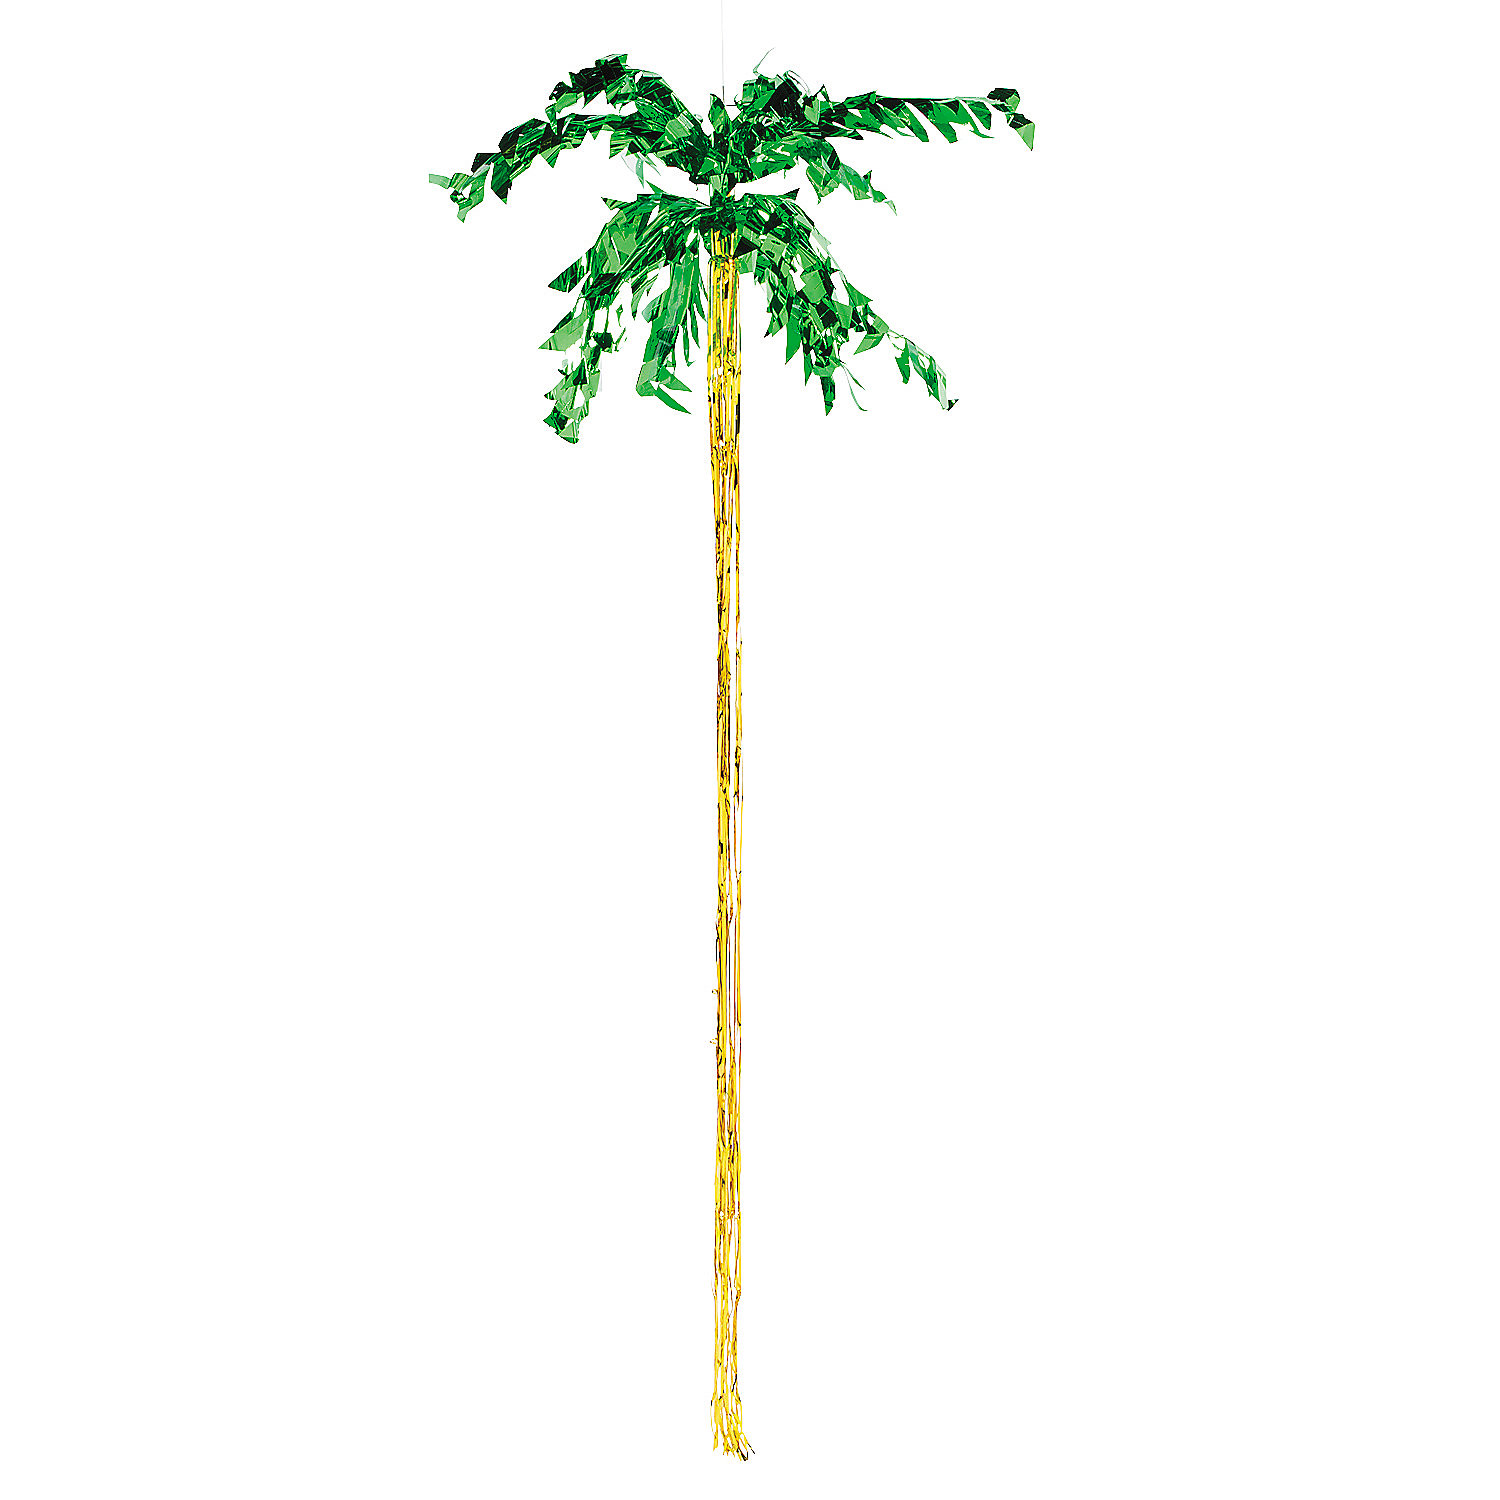 Http Funny Pictures Picphotos Net Palm Tree Home Decorations Https D2d00szk9na1qq Cloudfront Net Product 6b3fd413 168e 4d46 Af85 Fafd15ad1920 Images Large 0289924 Jpg